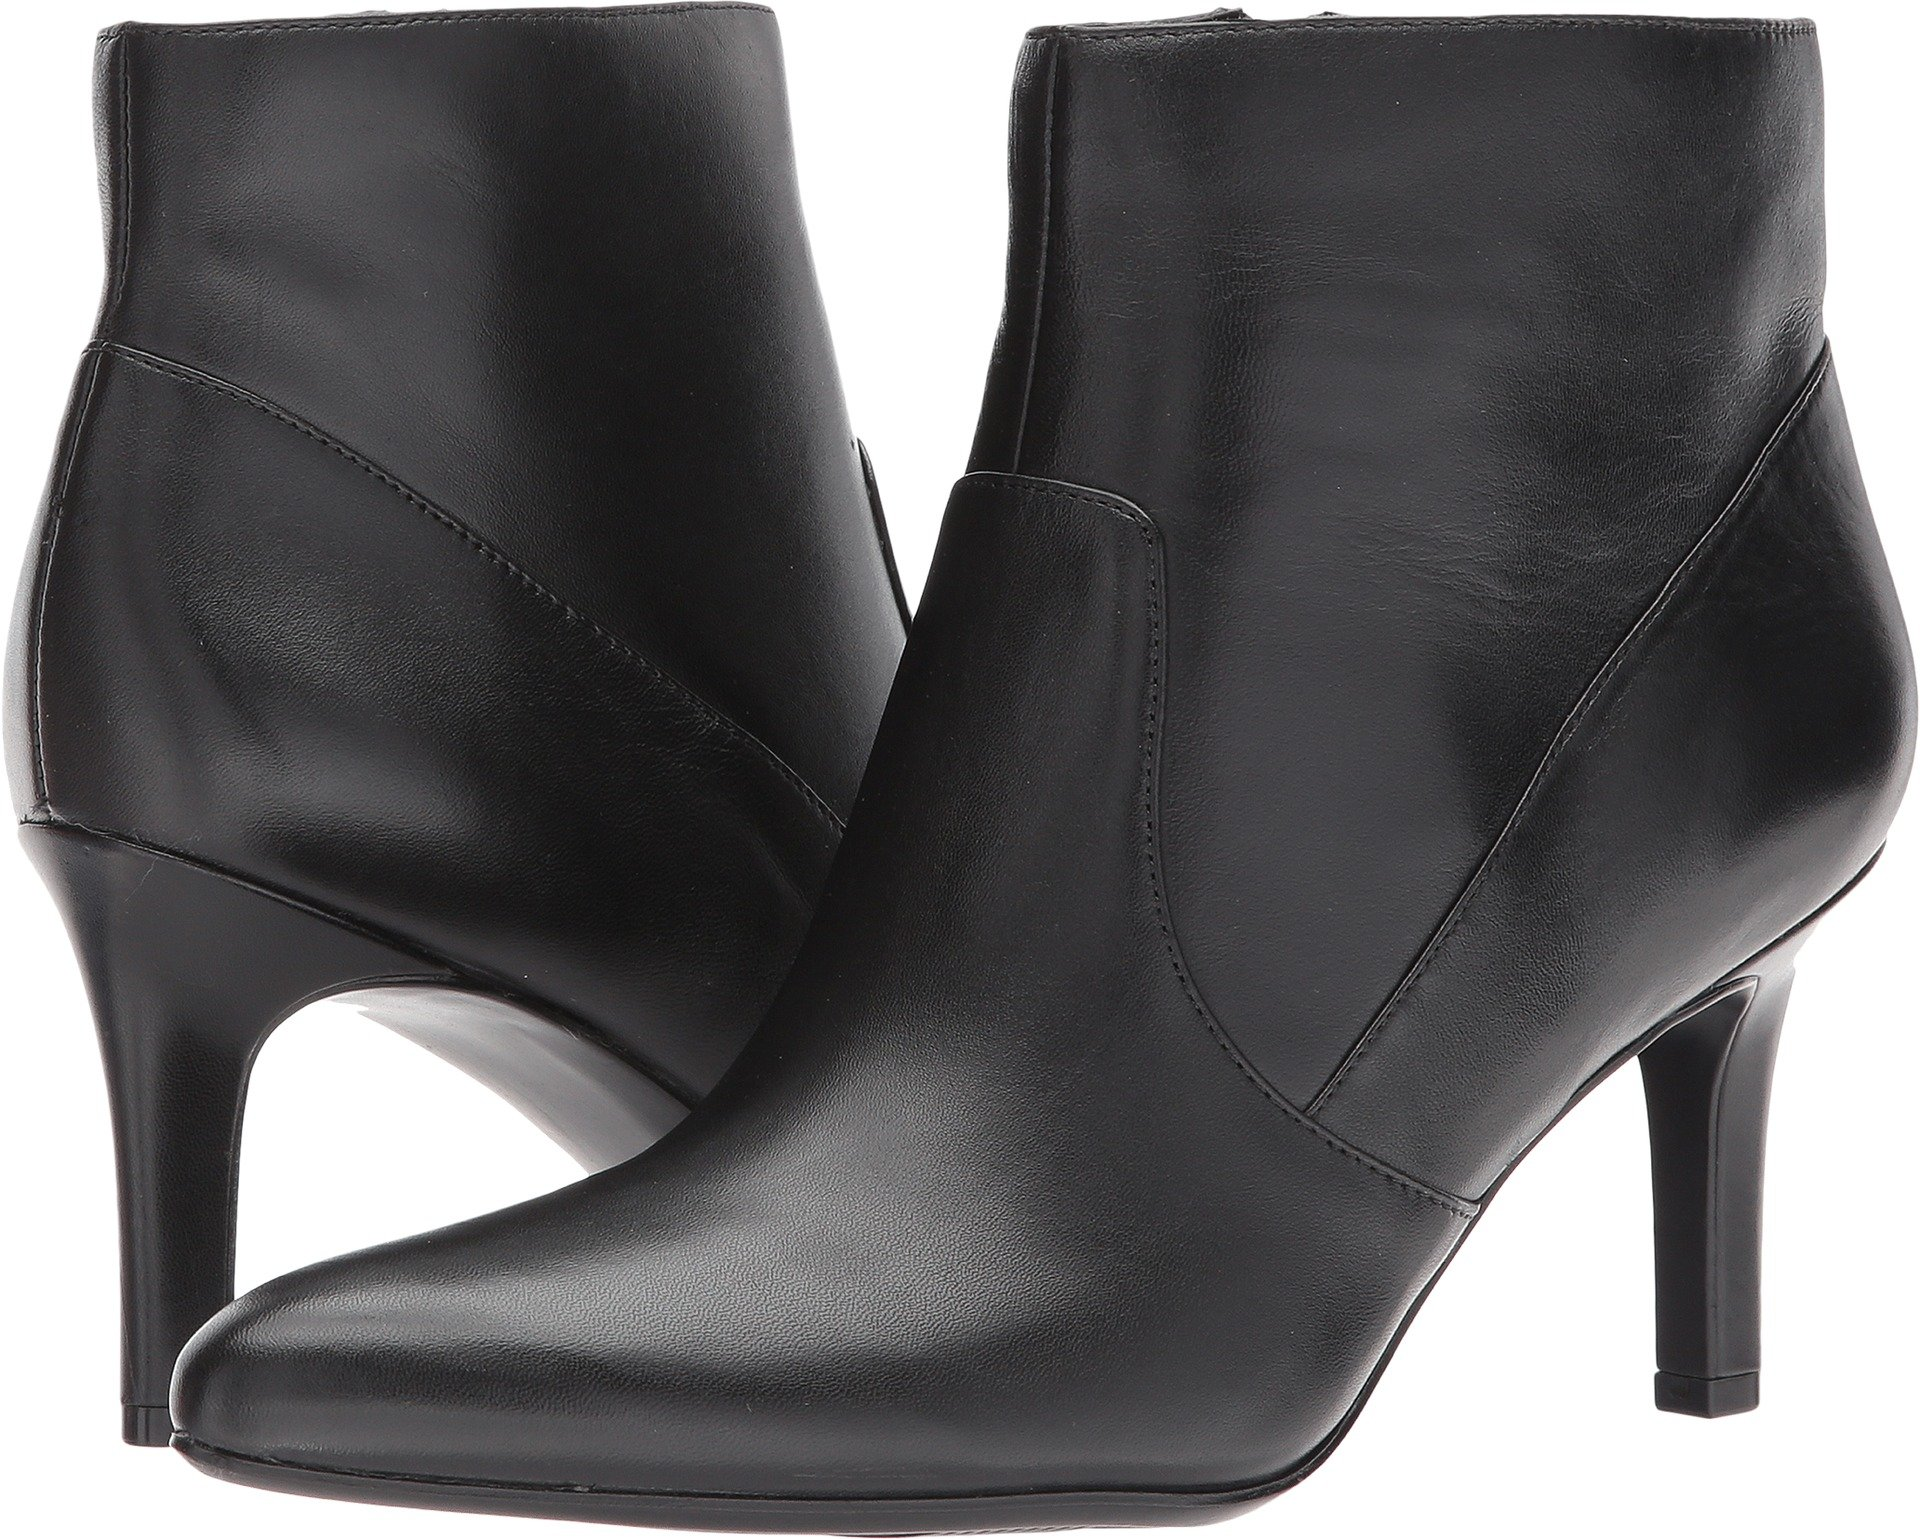 Naturalizer Women's Nadine Black Leather 8 M US by Naturalizer